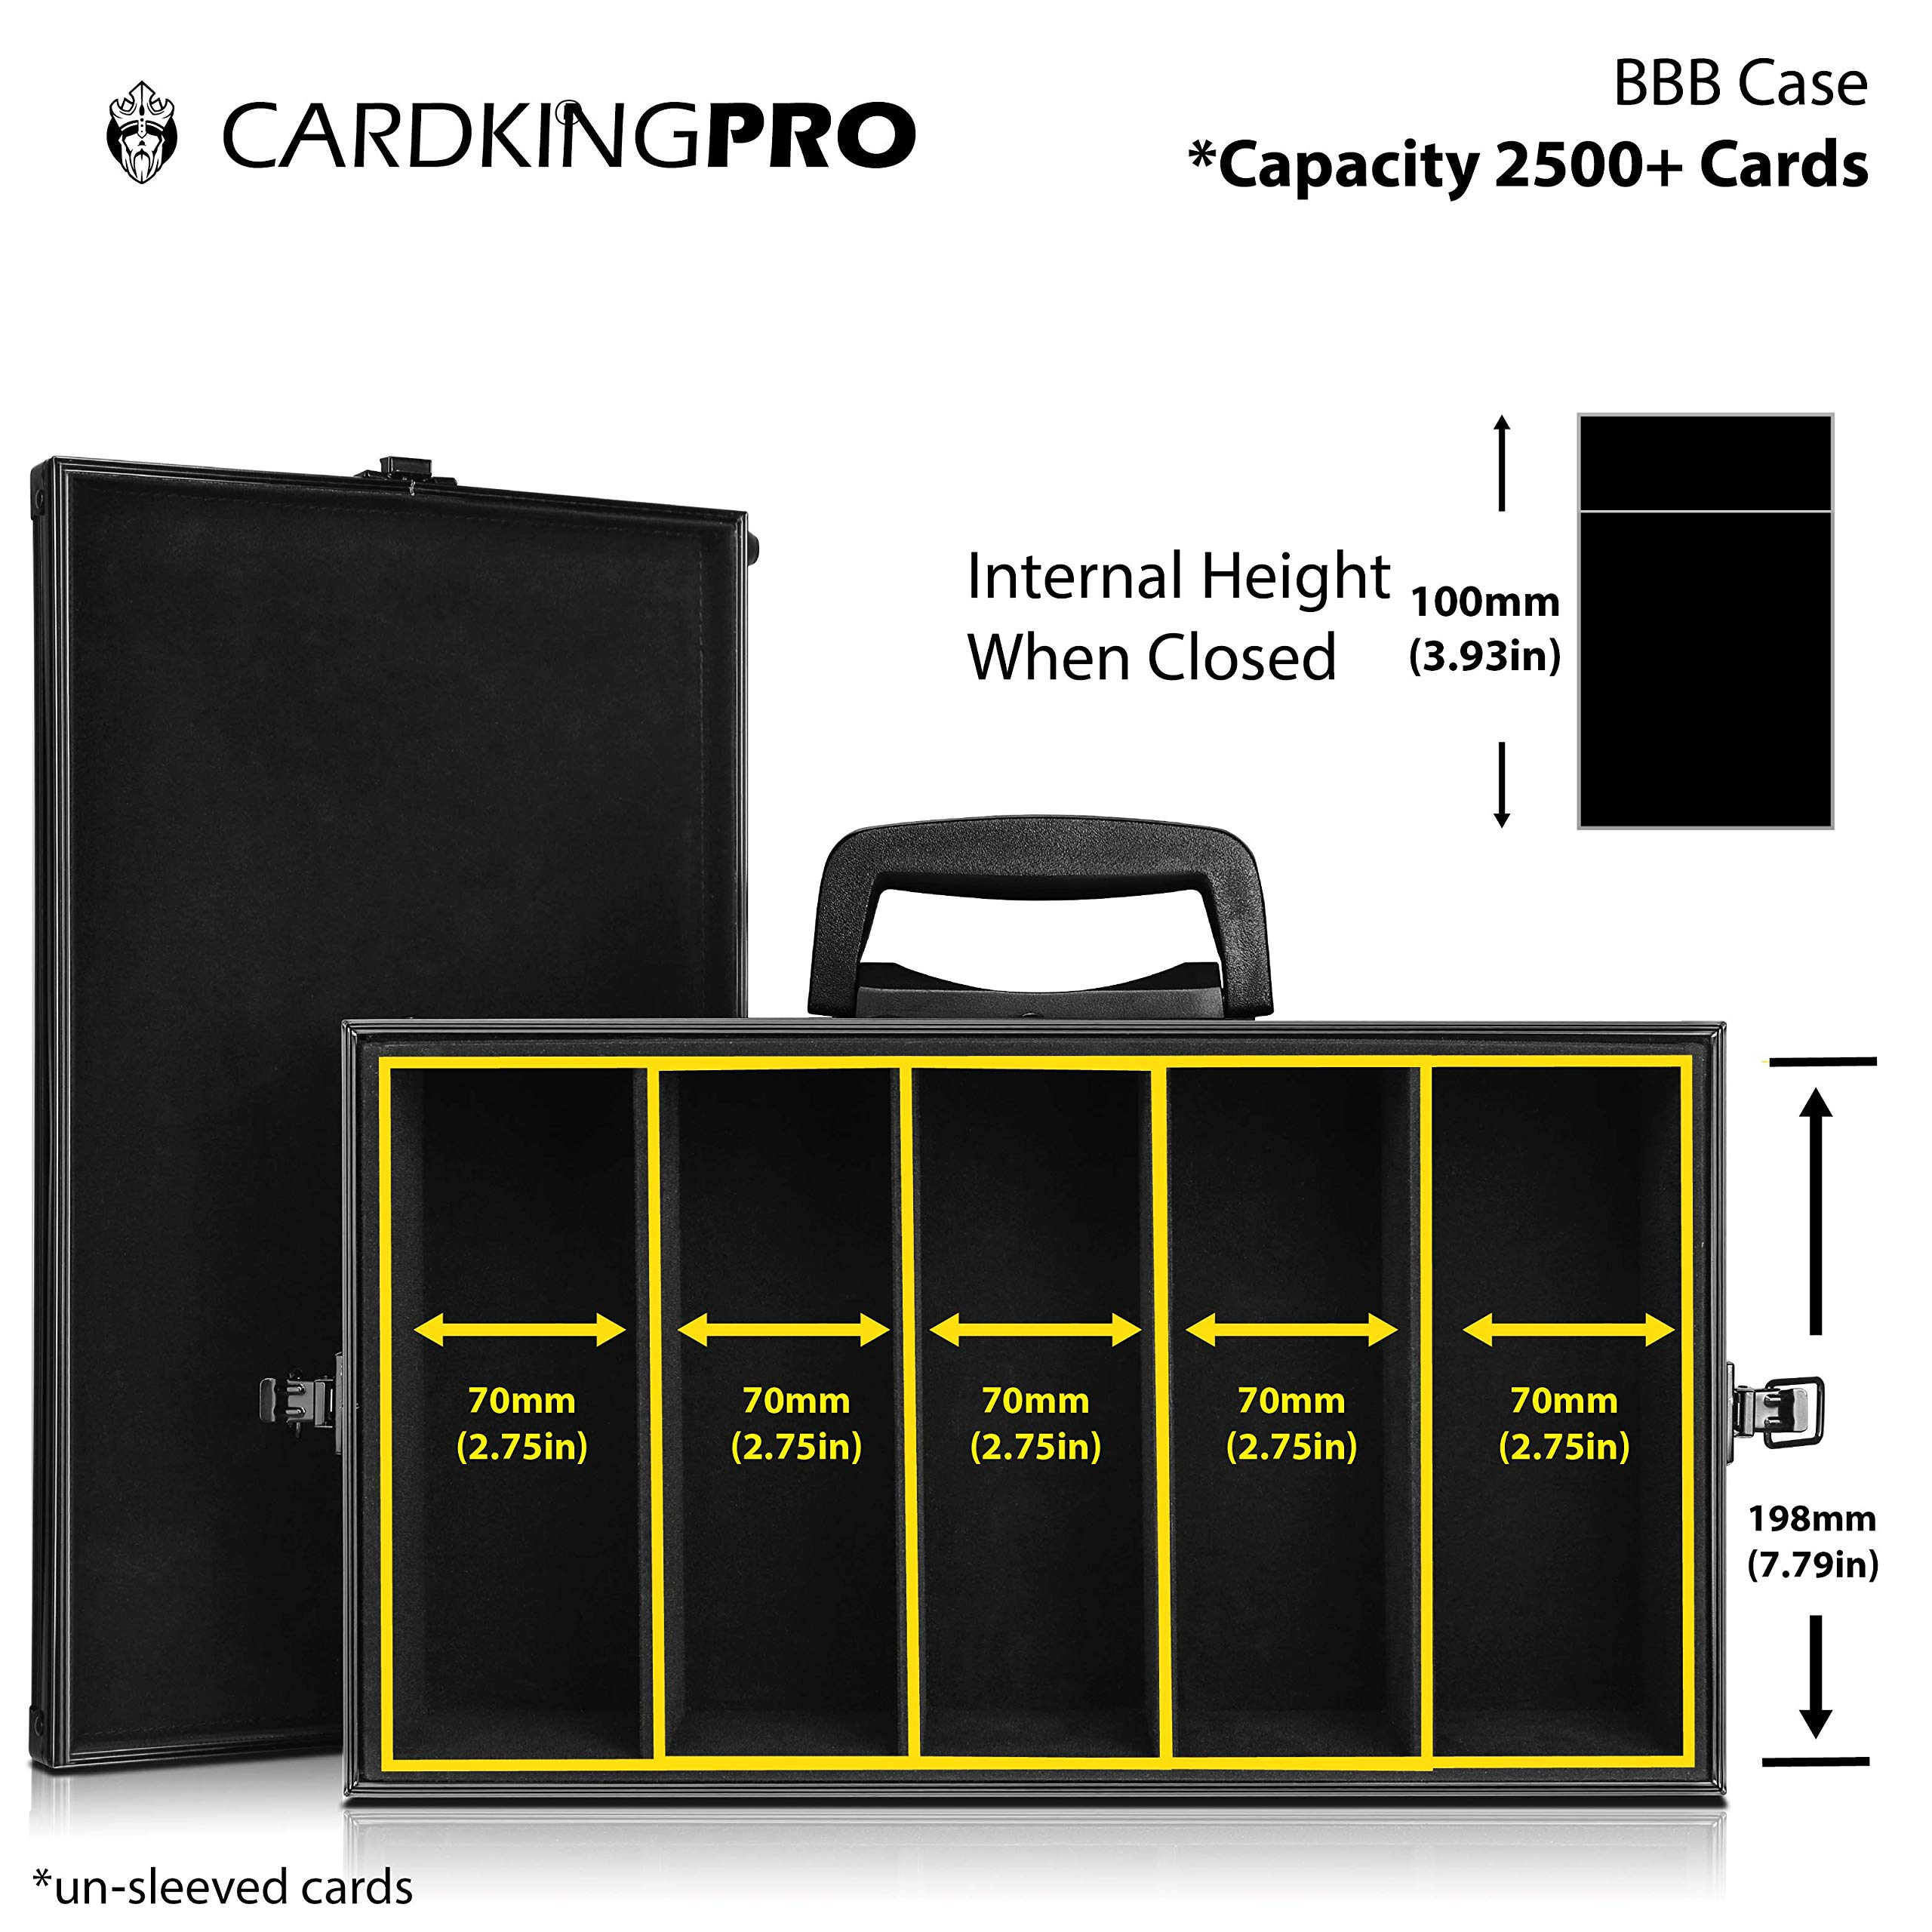 Game Card Storage Case (BBB Edition) | Case is Compatible with Magic The Gathering, MTG, All Standard Card Games (Game Not Included) | Includes 8 Dividers | Fits up to 2500 Loose Unsleeved Cards by CardKingPro (Image #4)